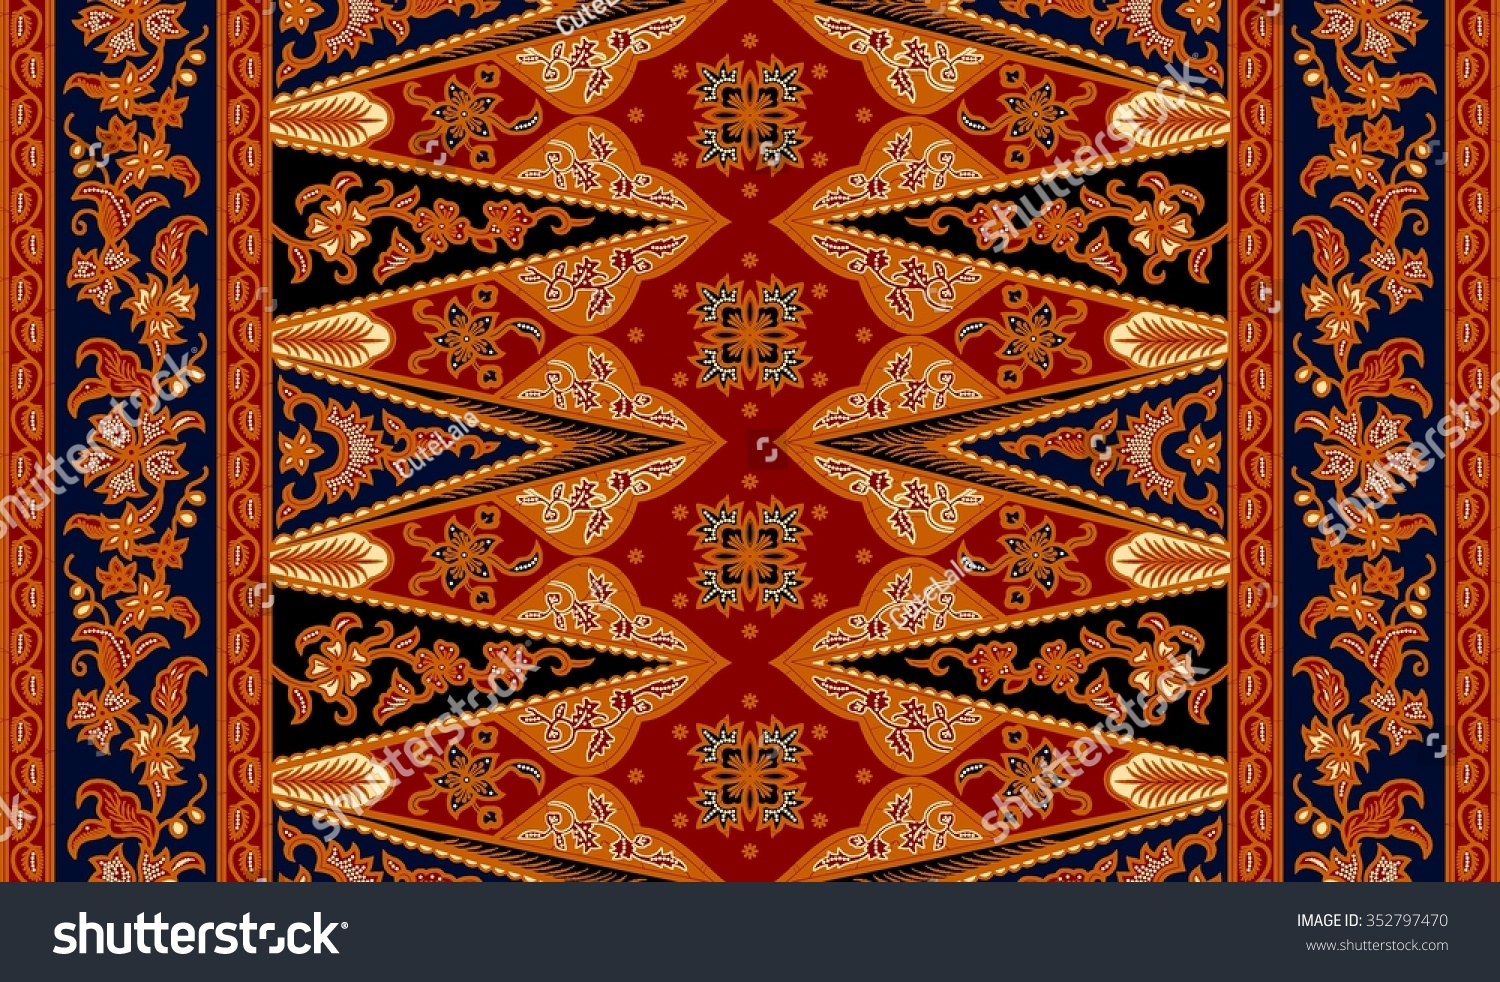 Seamless floral beautiful batik background Able to repeat for textile printing